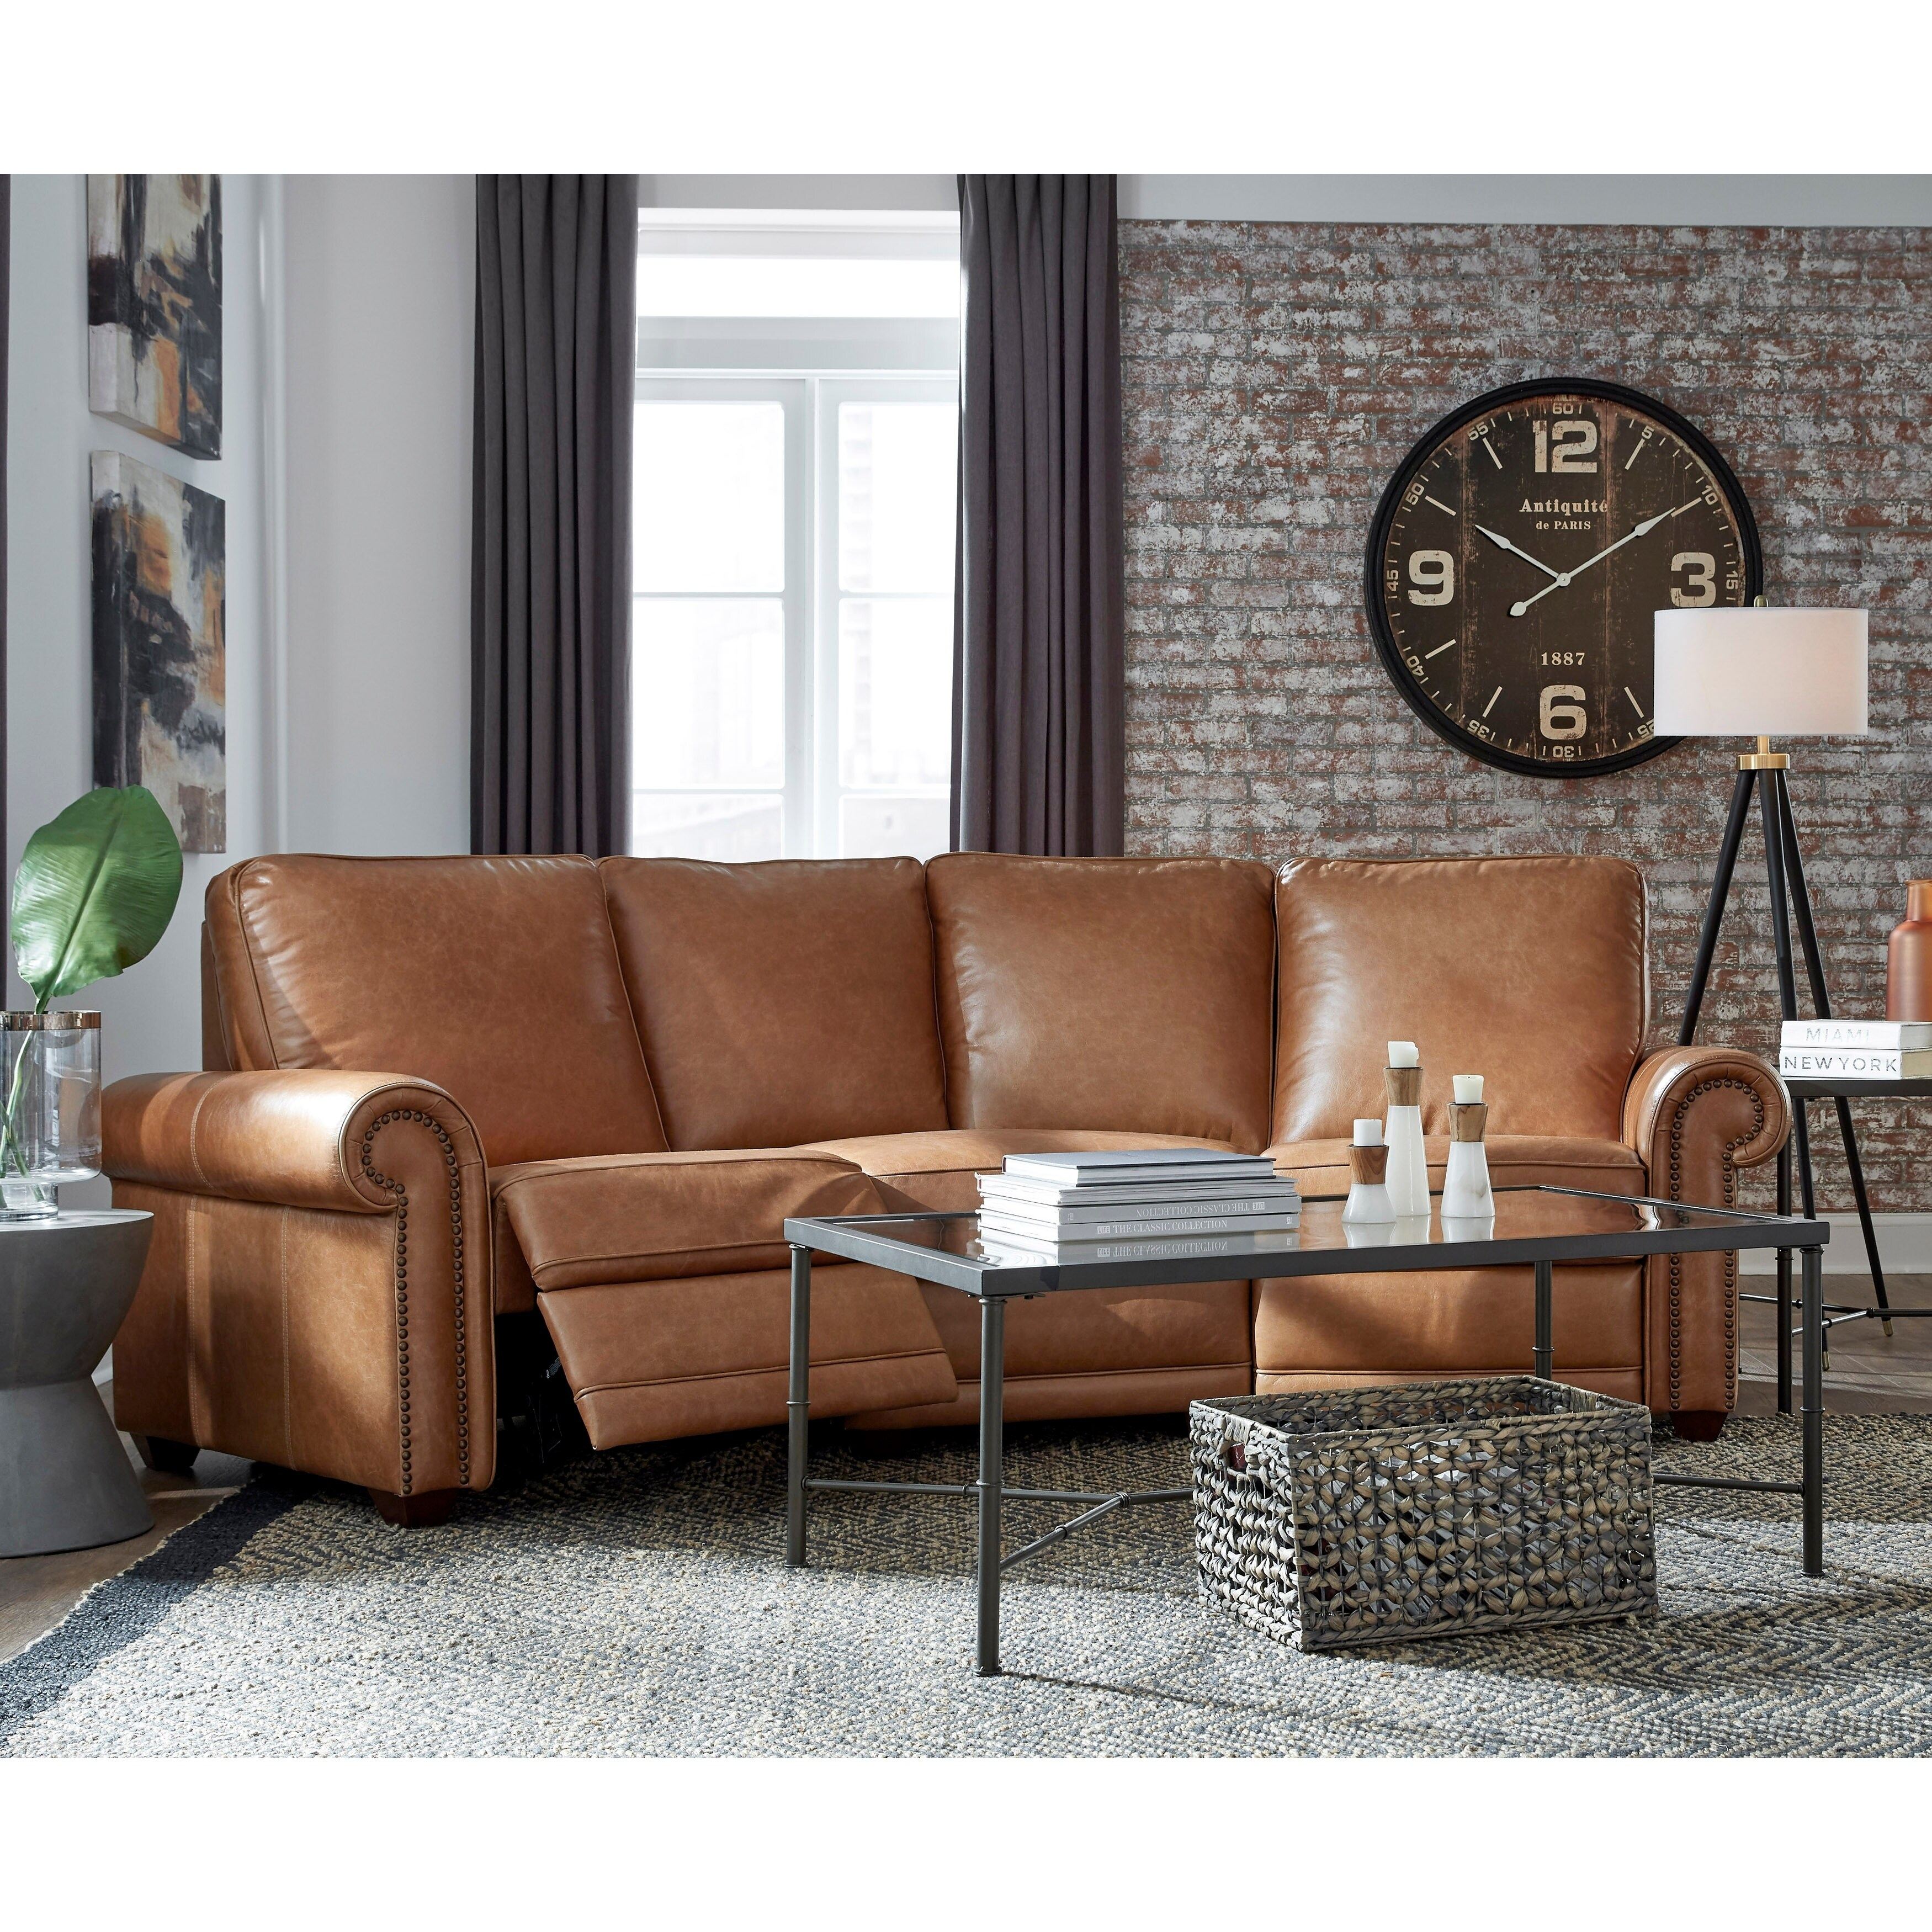 Orly Distressed Brown Top Grain Leather Power Reclining Curved Sofa